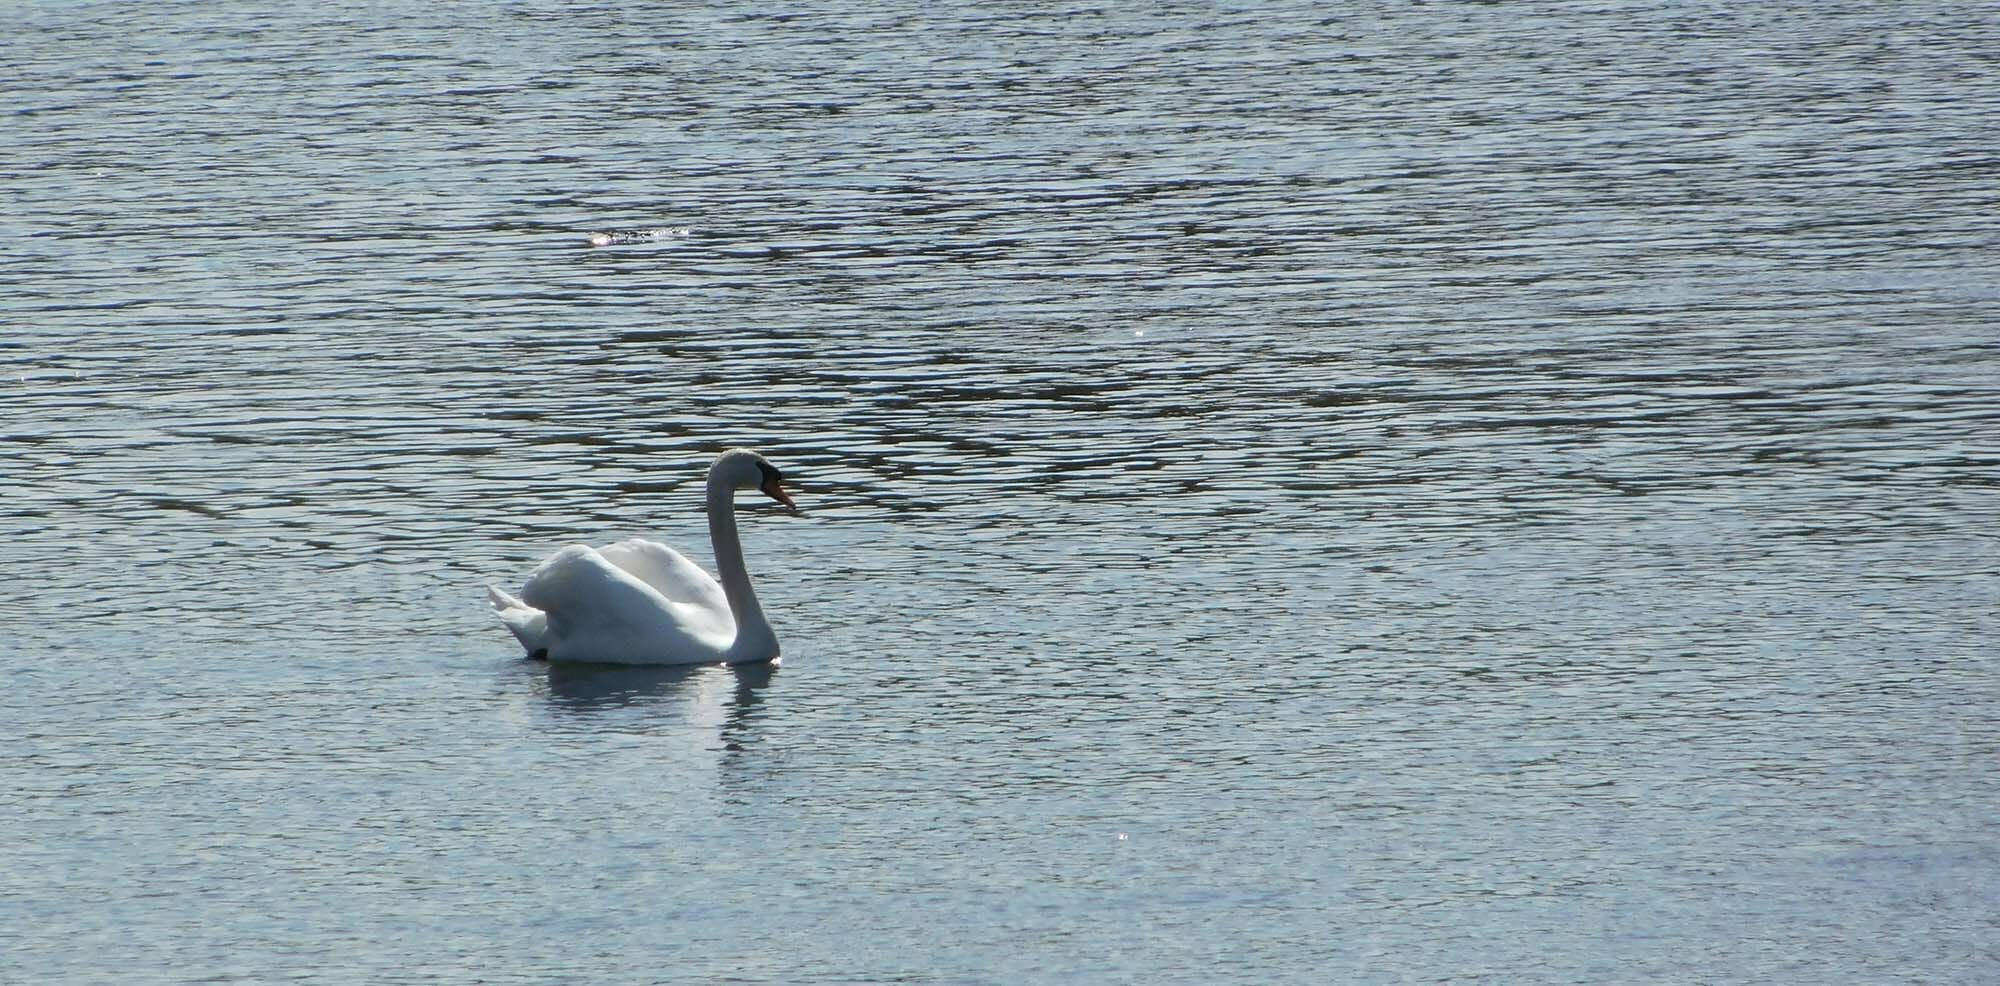 Swan on the river wye